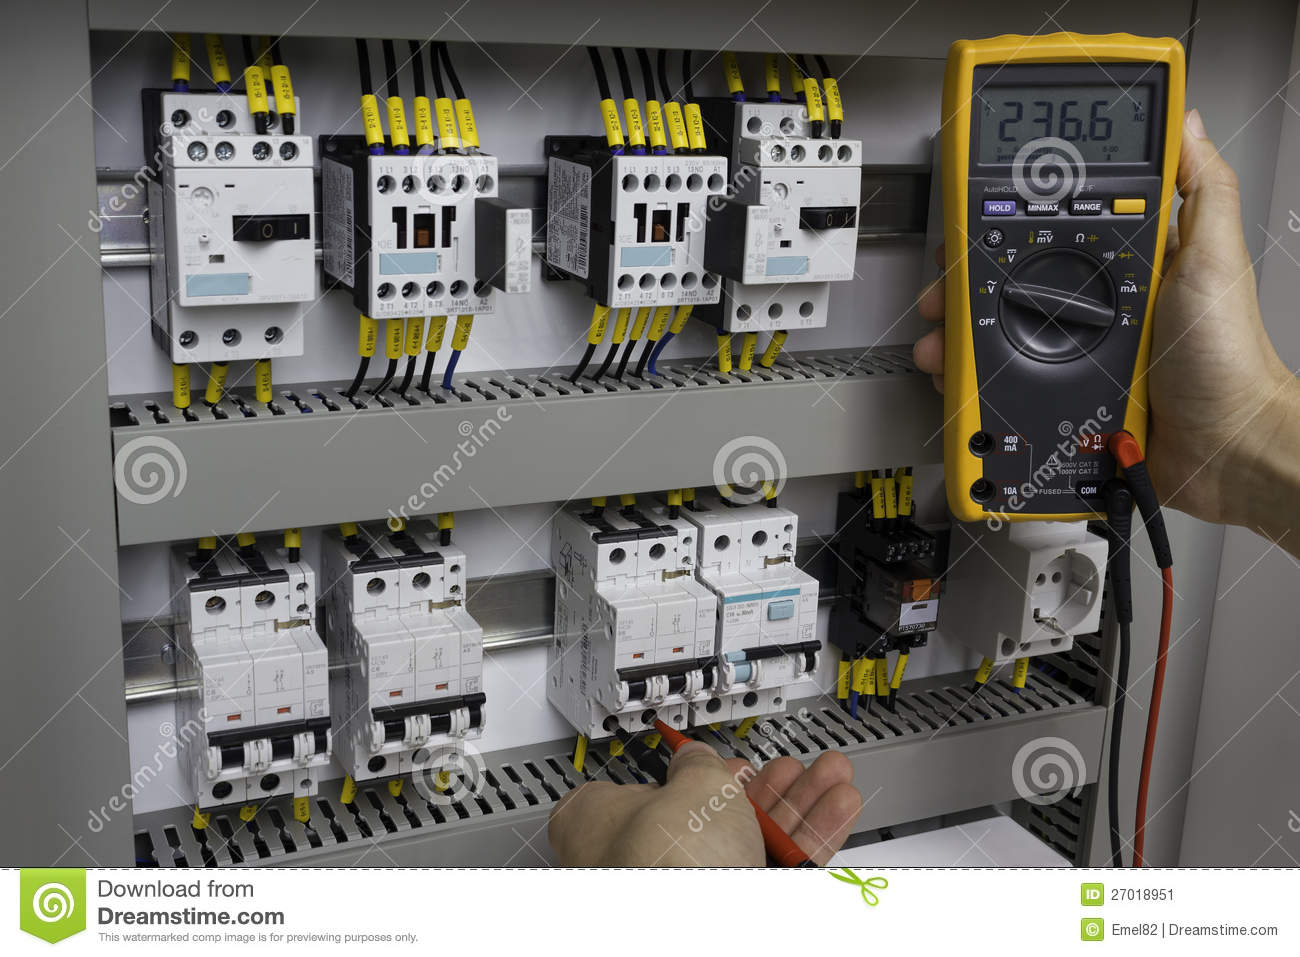 Electrical work Electrical installation work Local Authority Building